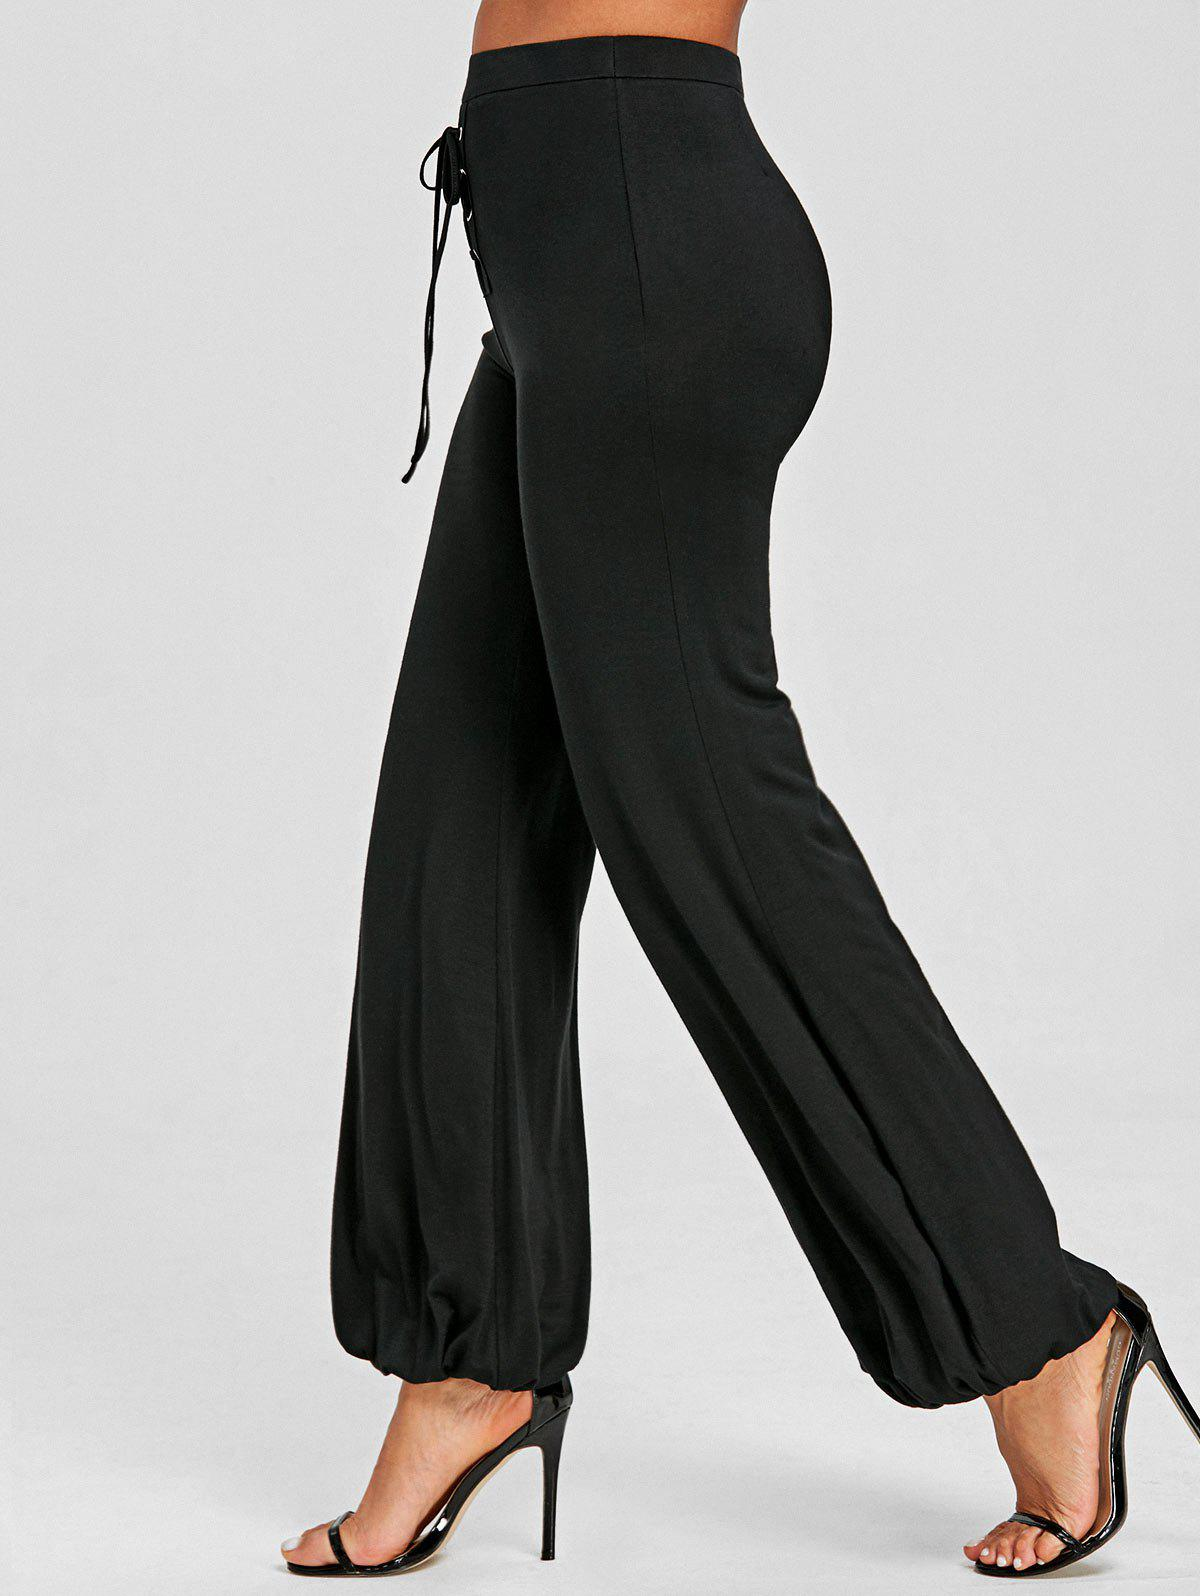 High Waist Lace-up Loose Pants - BLACK L